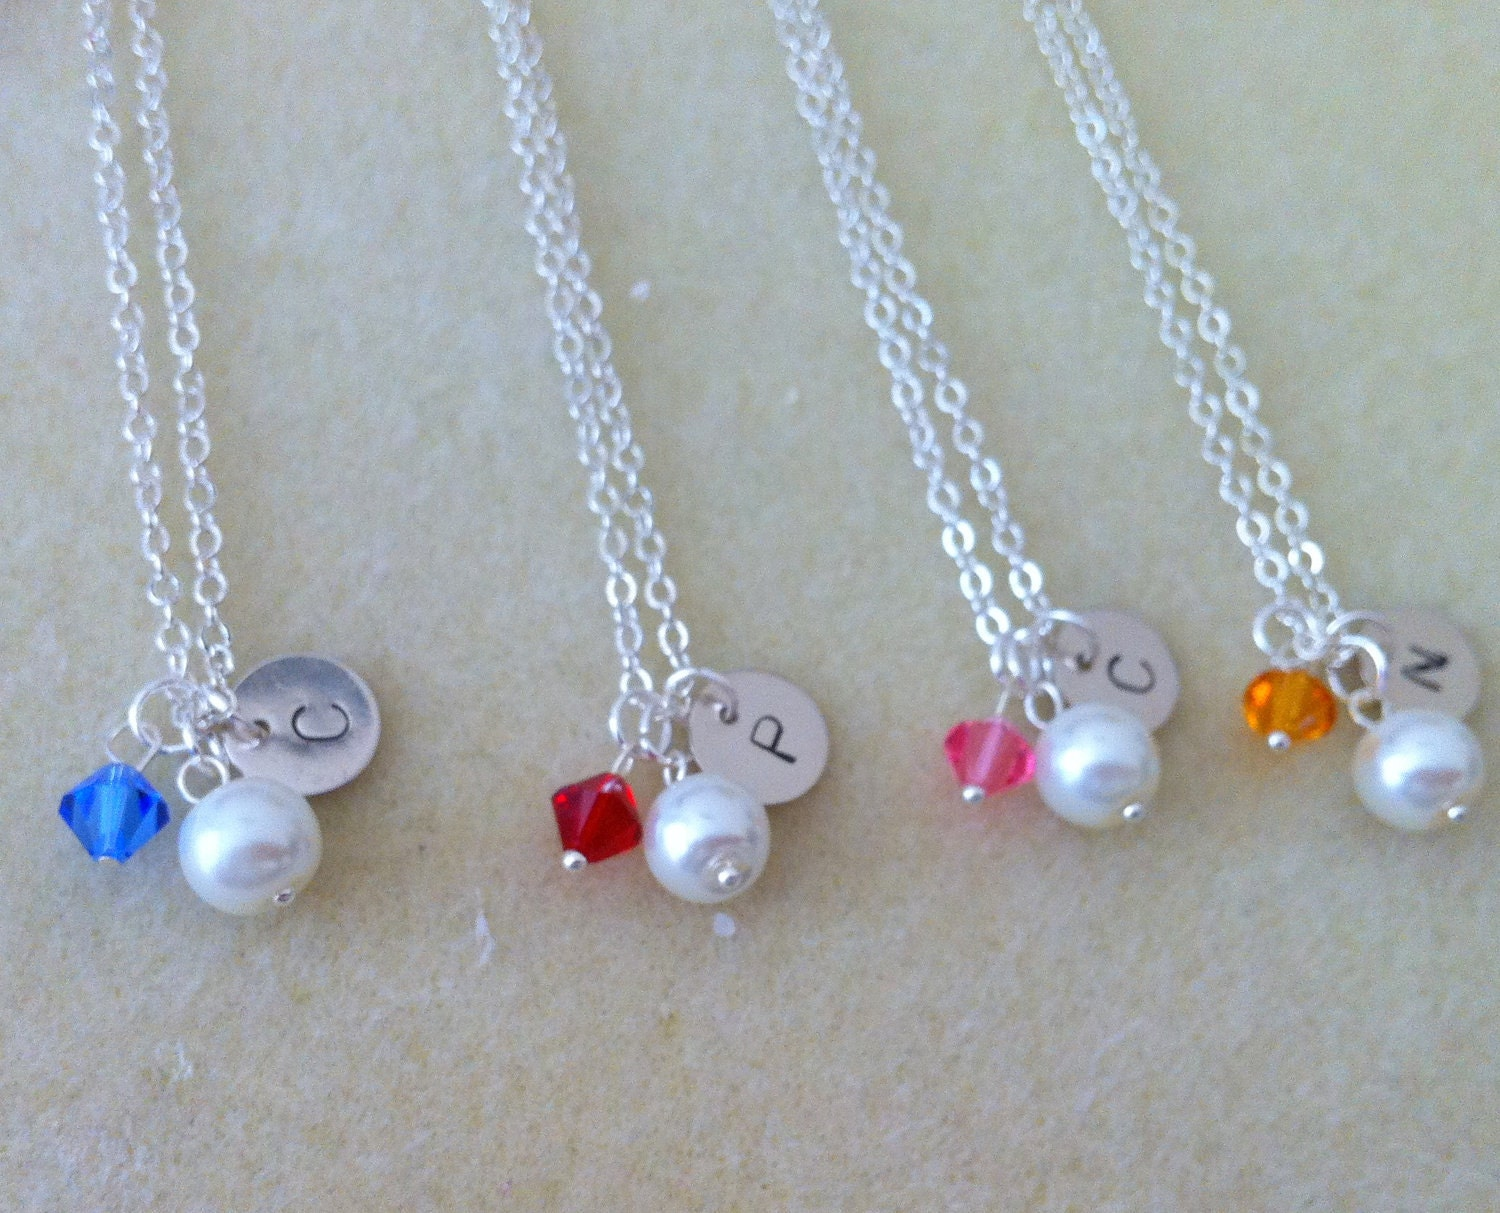 4 Bridesmaid necklace gifts, set of 4 necklaces, personalized, custom initials, pearl, birthstone, holiday, flowergirl, junior bride